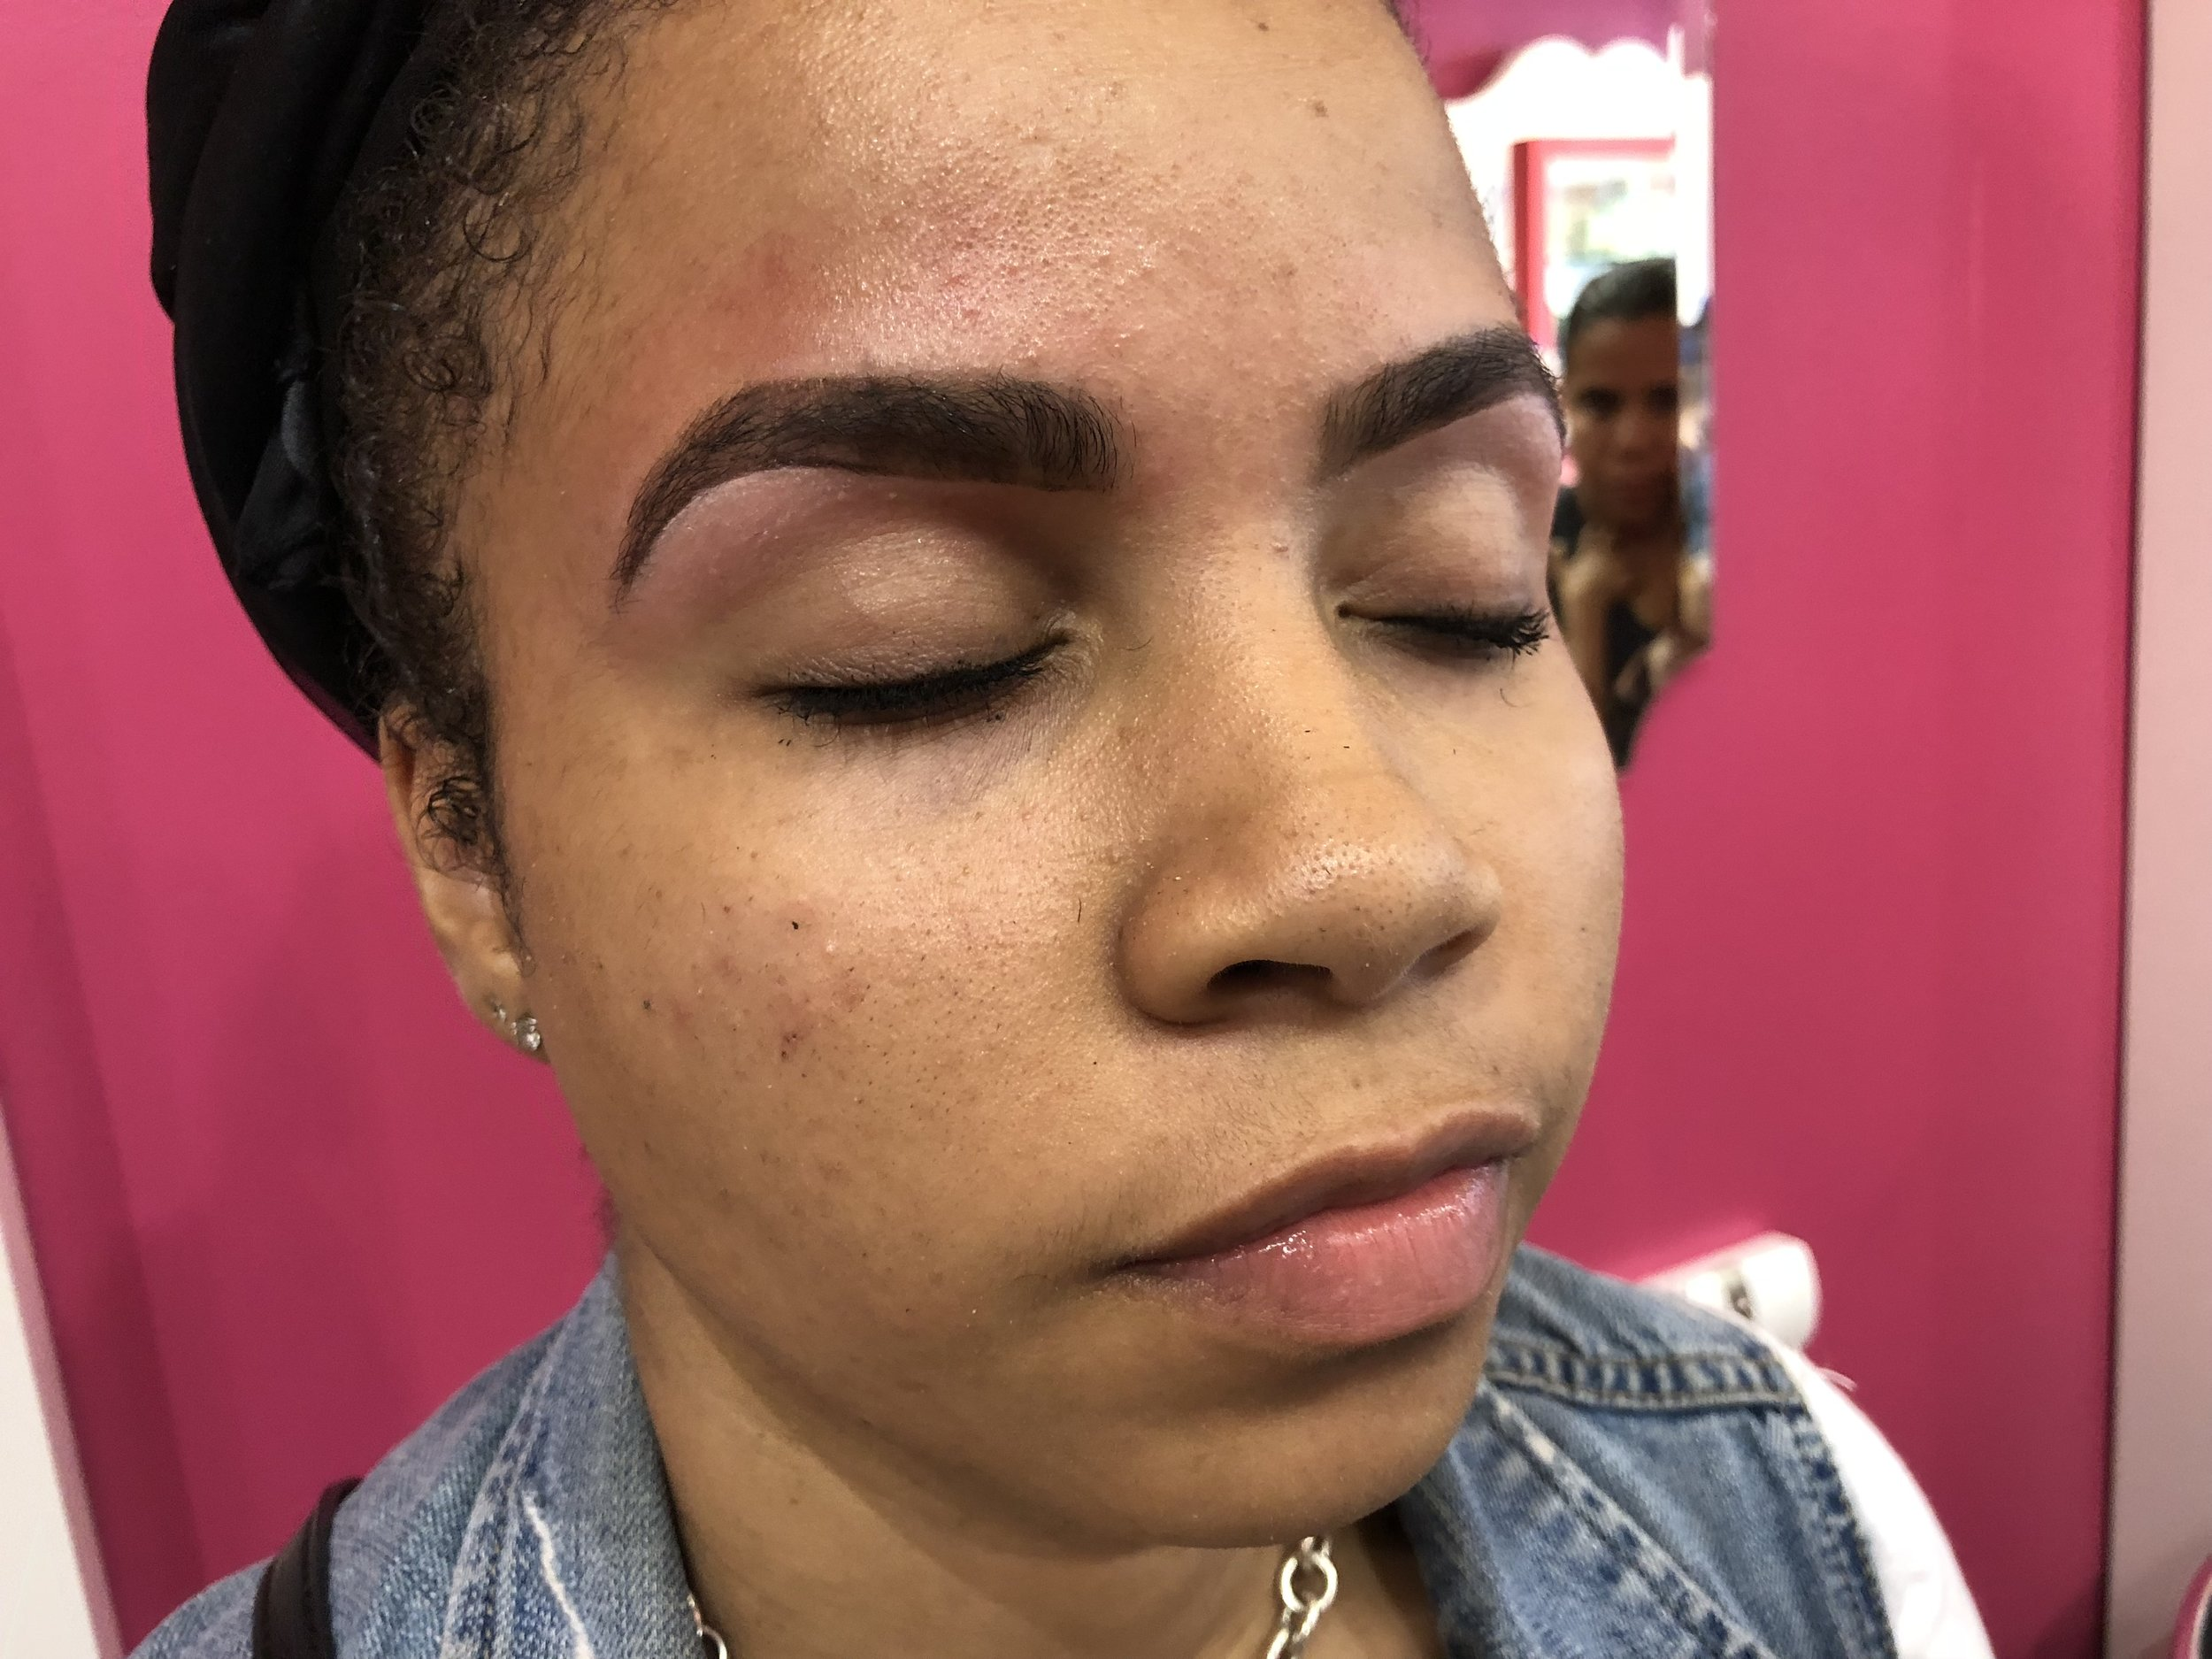 Sky Beauté Columbia, Maryland DMV Brow Waxing Studio